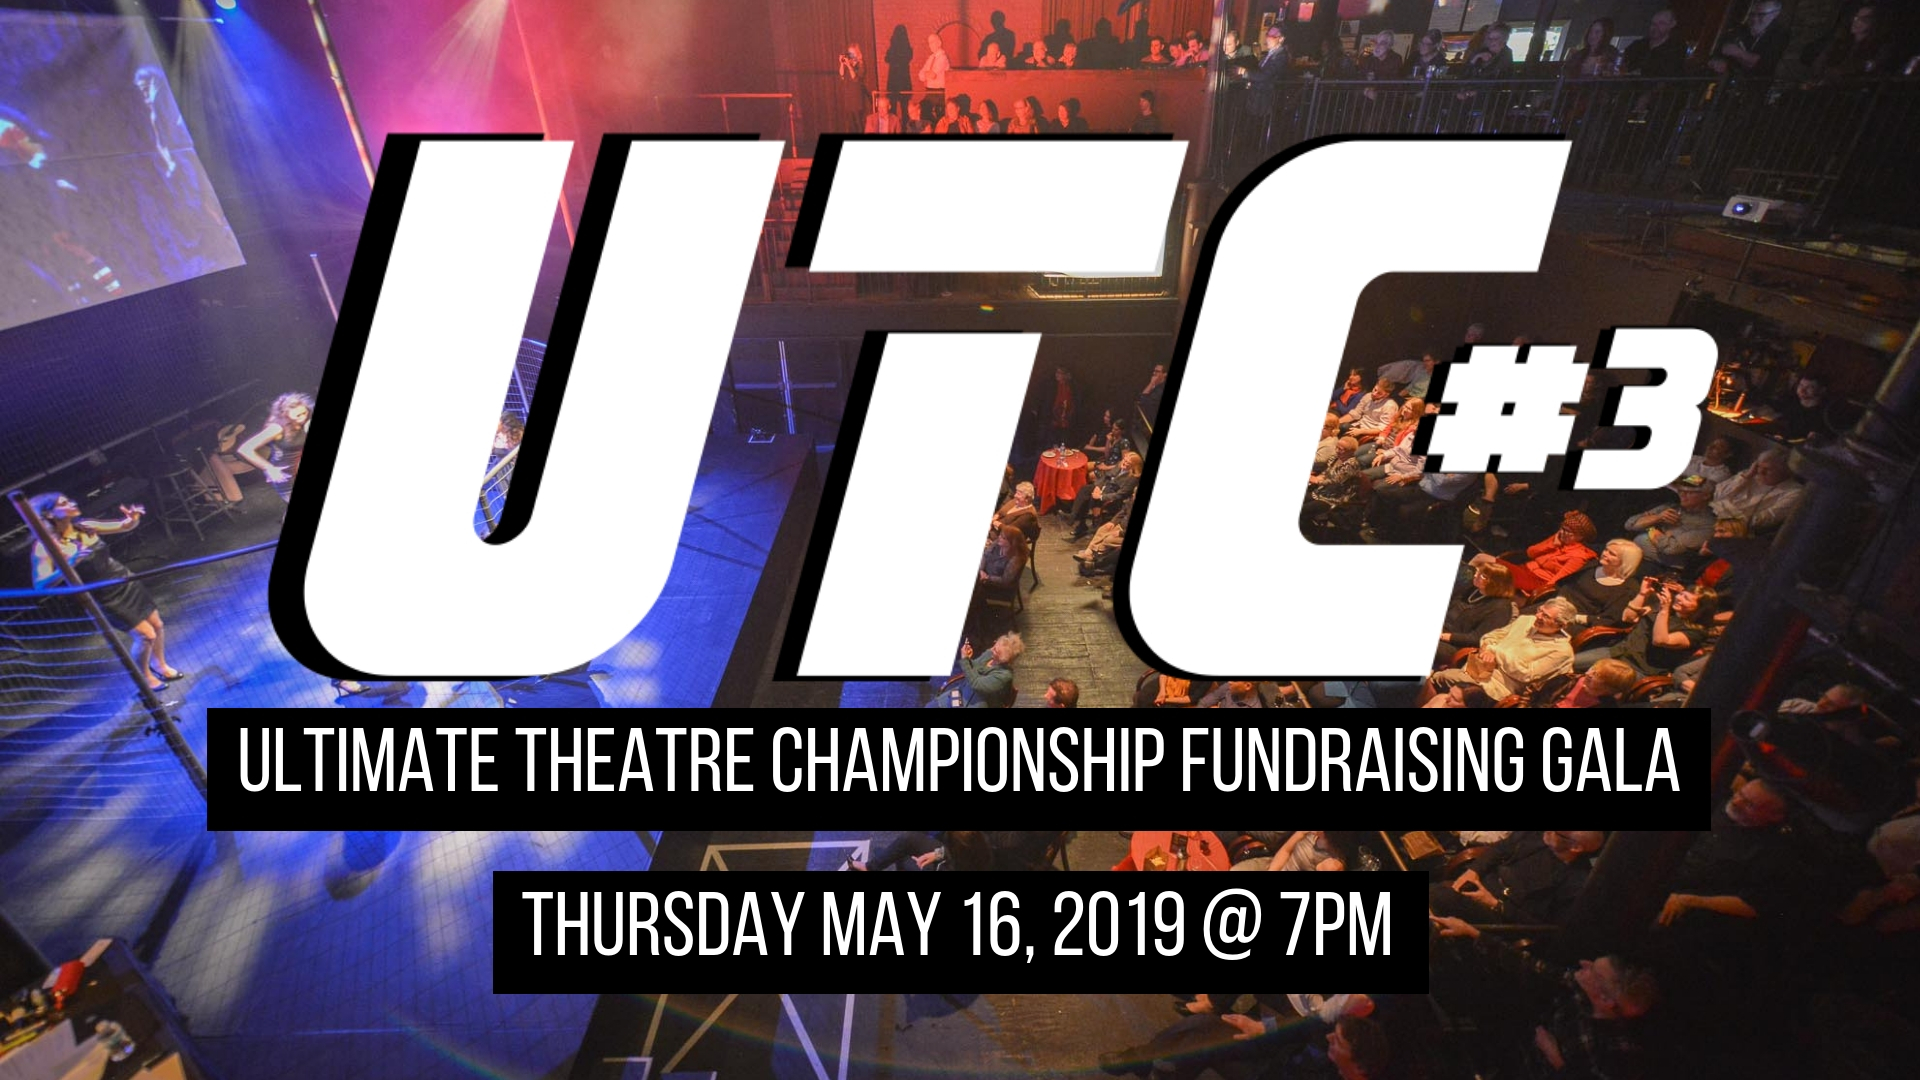 UTC Ultimate Theatre Championship Fundraiser Thursday May 16, 2019 at 7pm